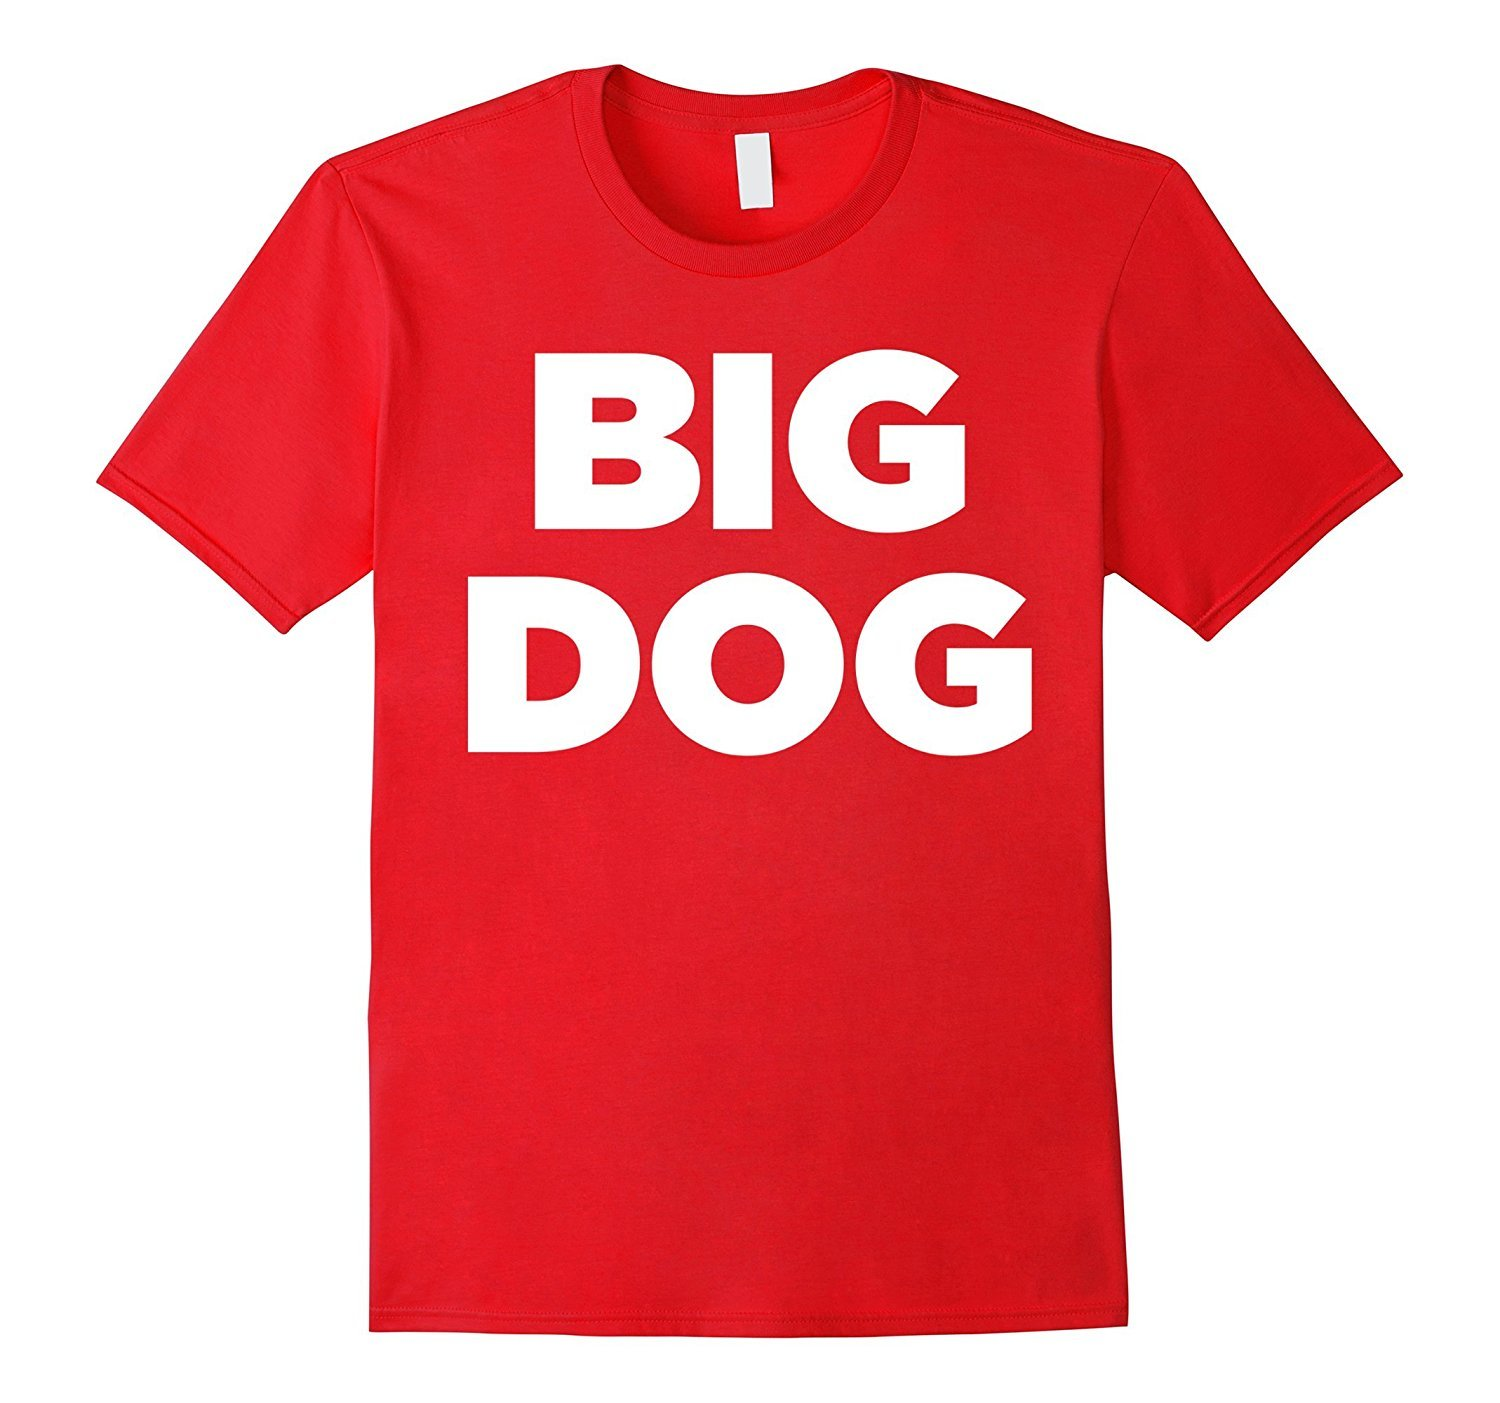 Awesome shirts big dog t shirt awesome cool funny big for Dog t shirt for after surgery